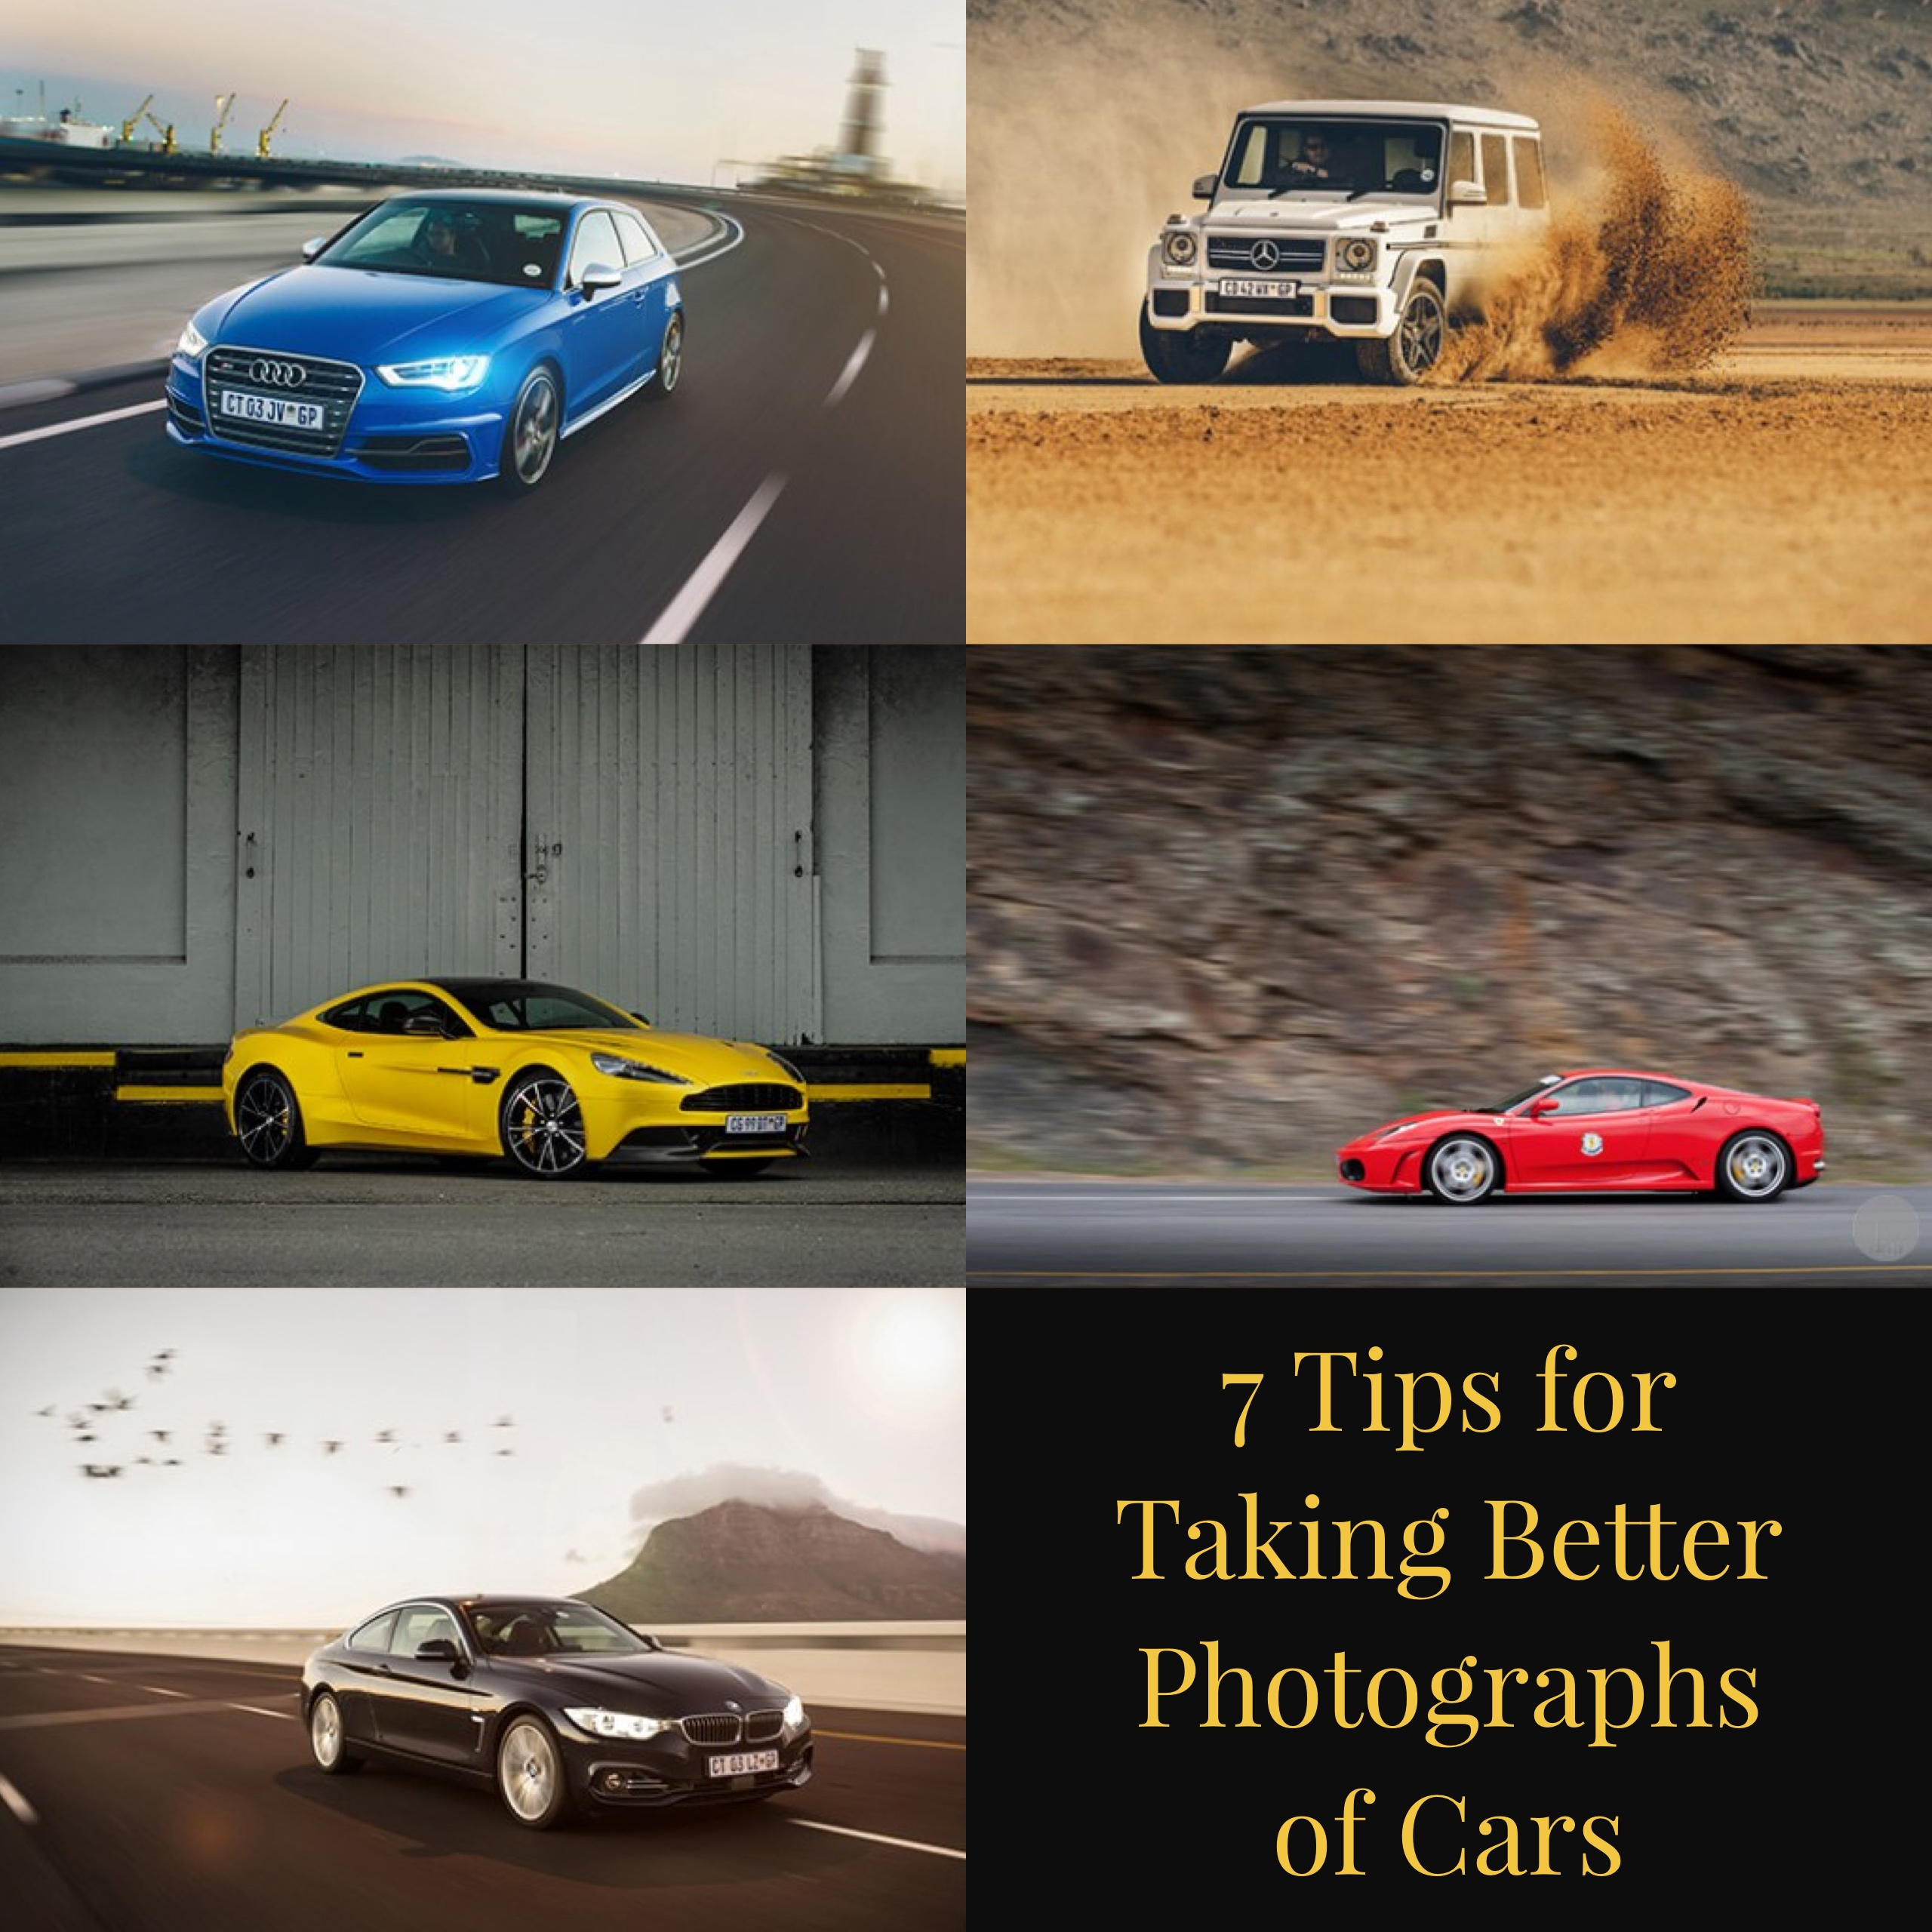 7 Tips for Taking Better Photographs of Cars